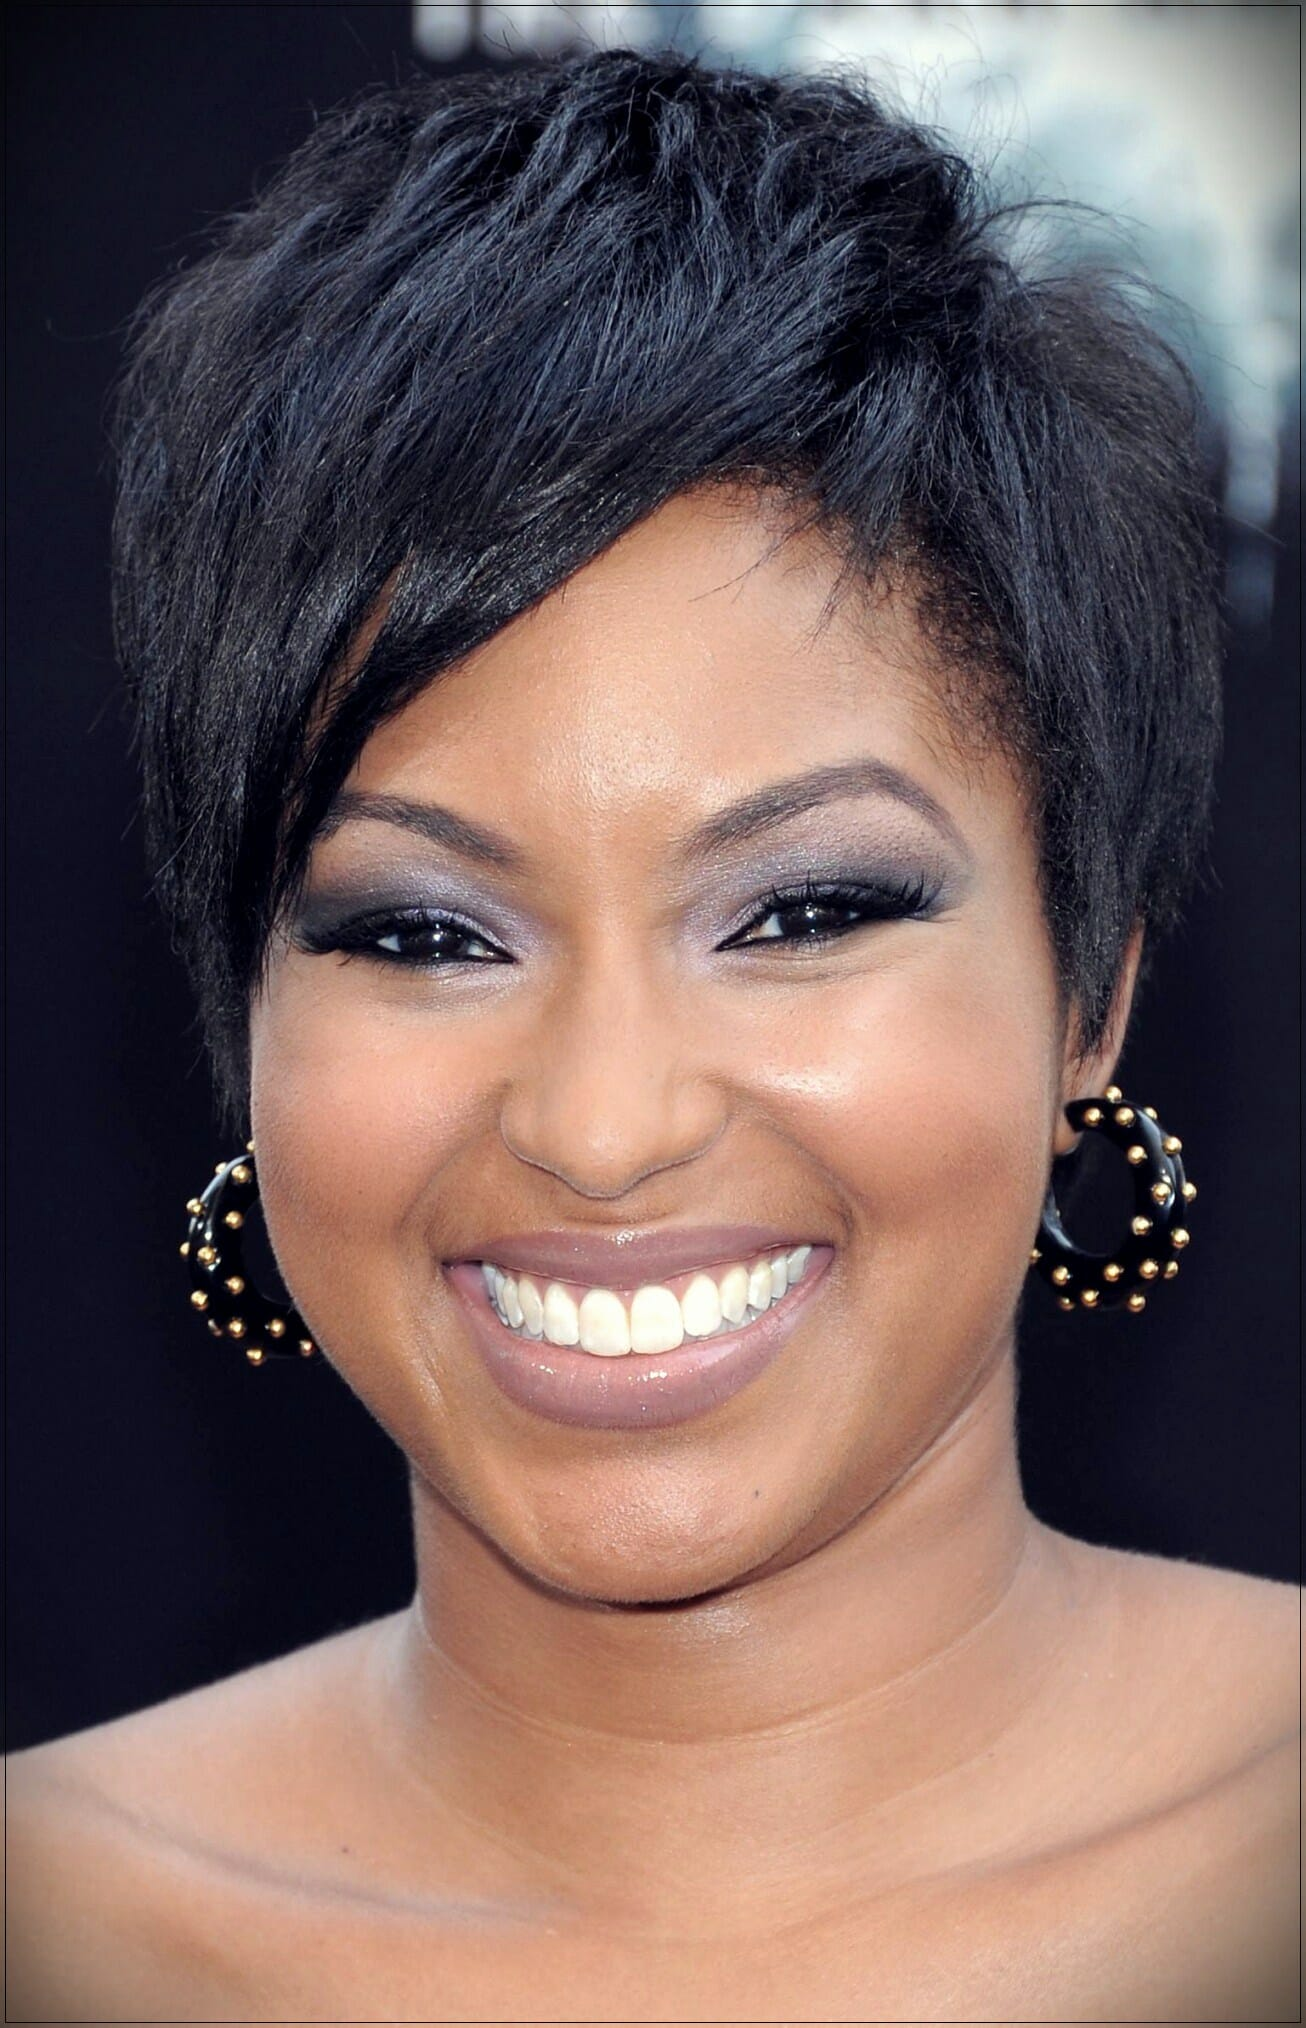 short hairstyles for round faces 12 - Correct hairstyles for your face type